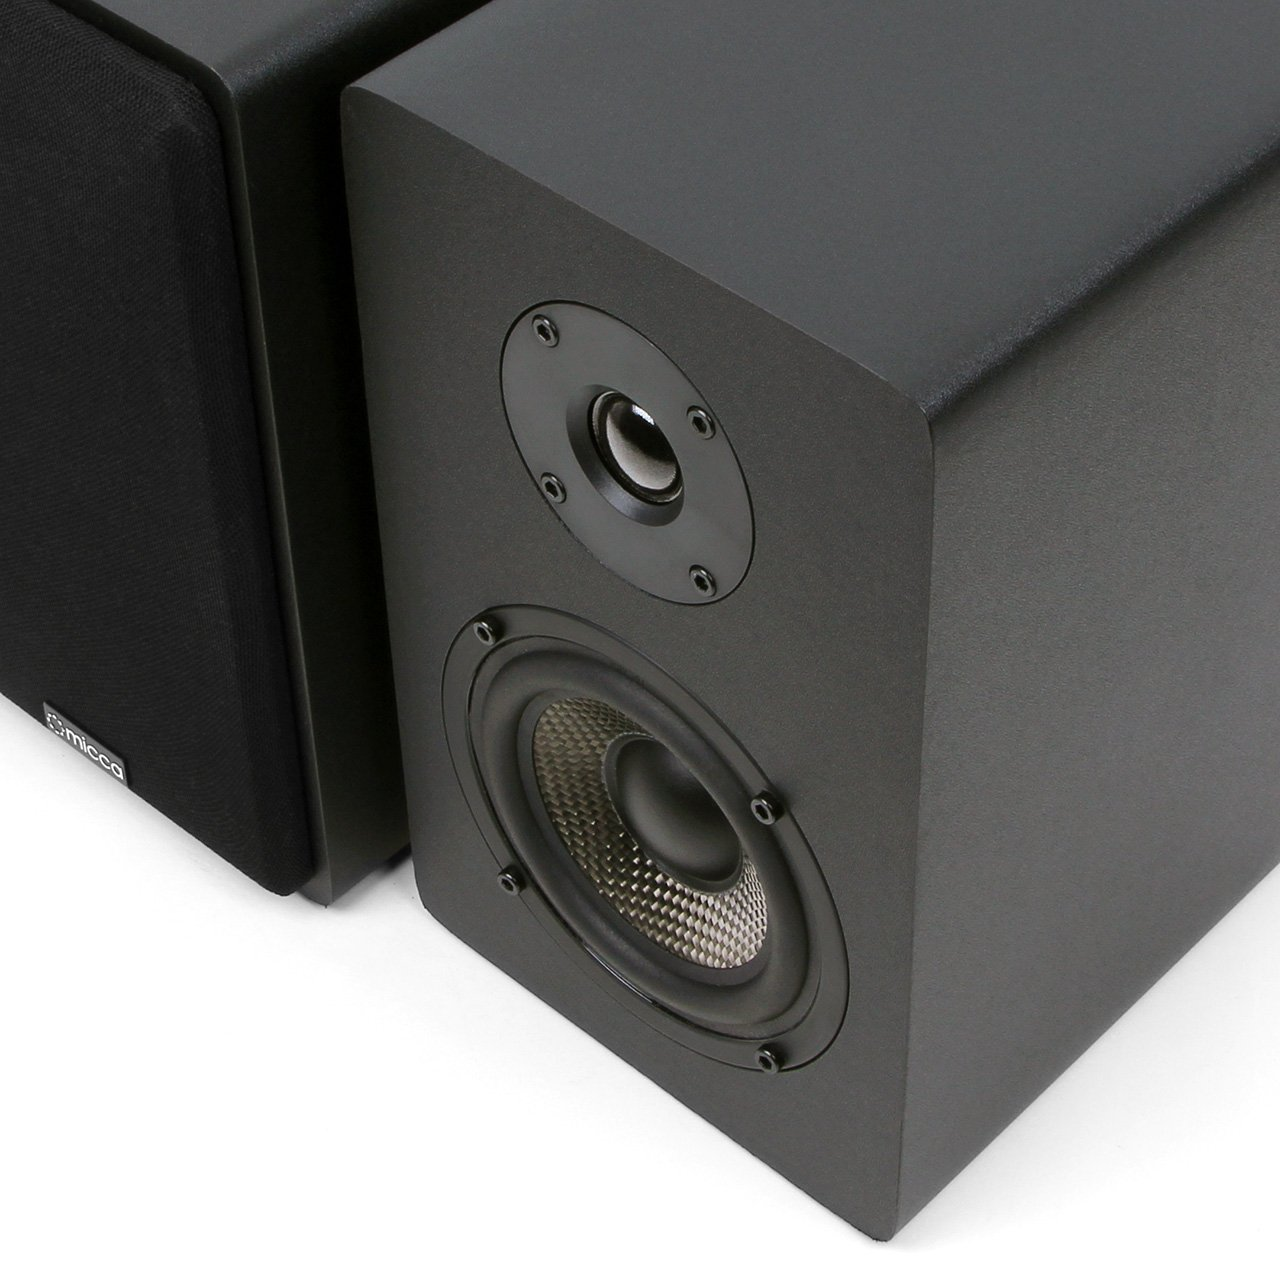 Micca MB42X Bookshelf Speakers With 4-Inch Carbon Fiber Woofer and Silk Dome Tweeter (Black, Pair) by Micca (Image #3)